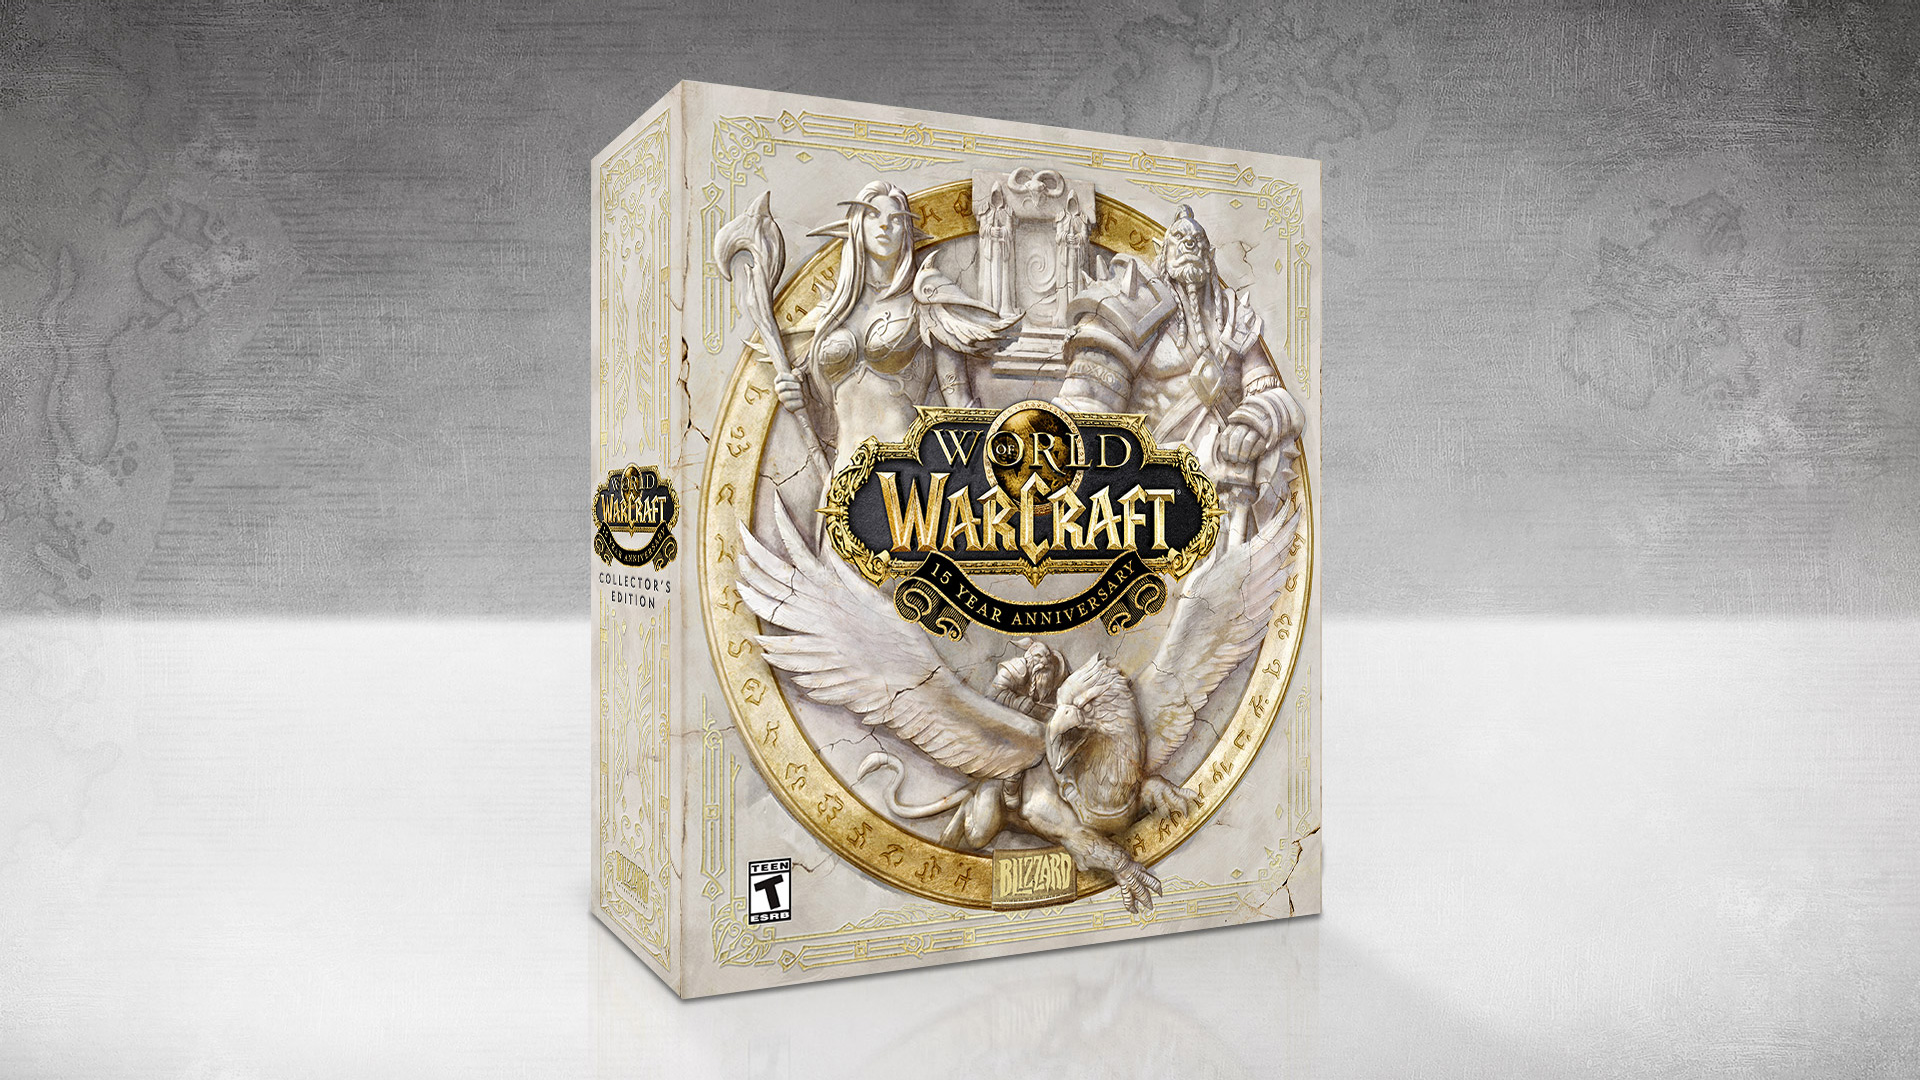 Collector anniversaire de World of Warcraft